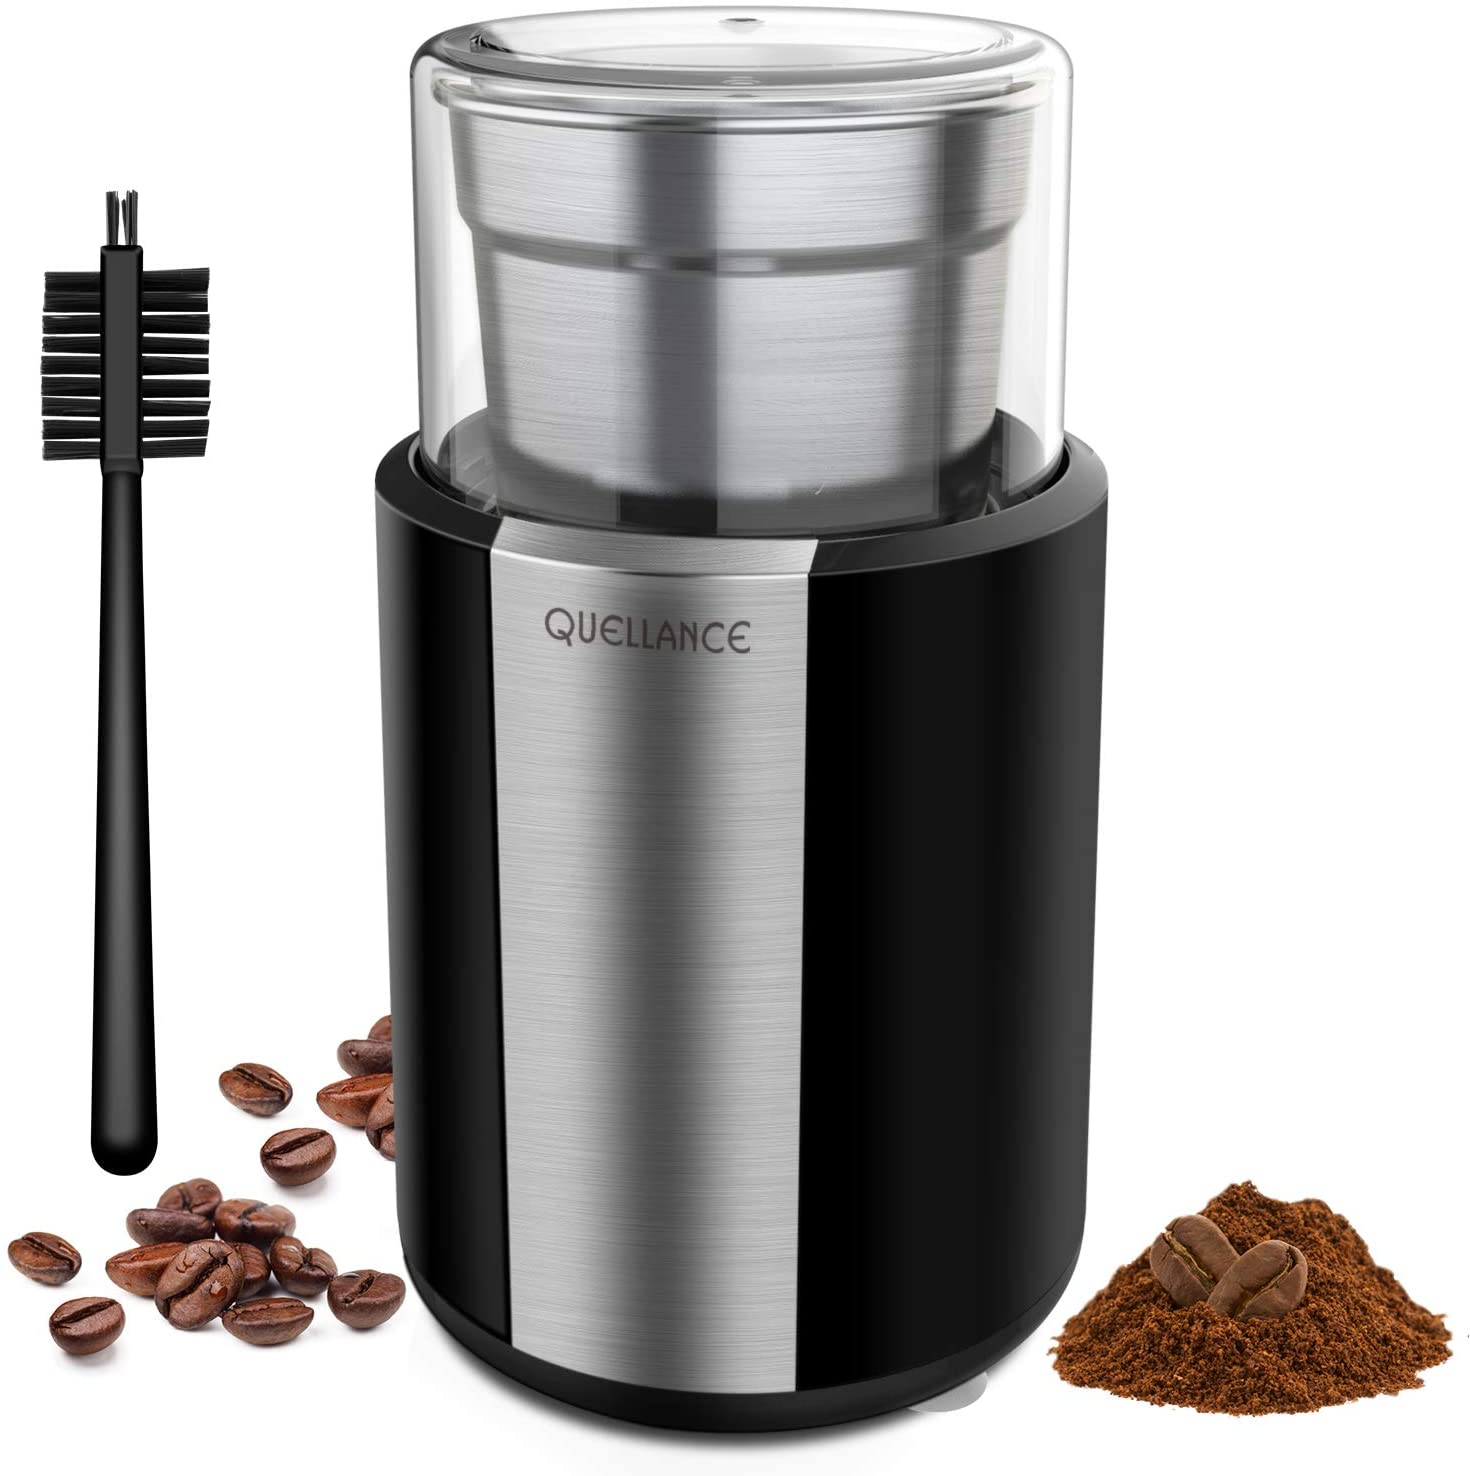 QUELLANCE Electric Coffee & Spice Grinder